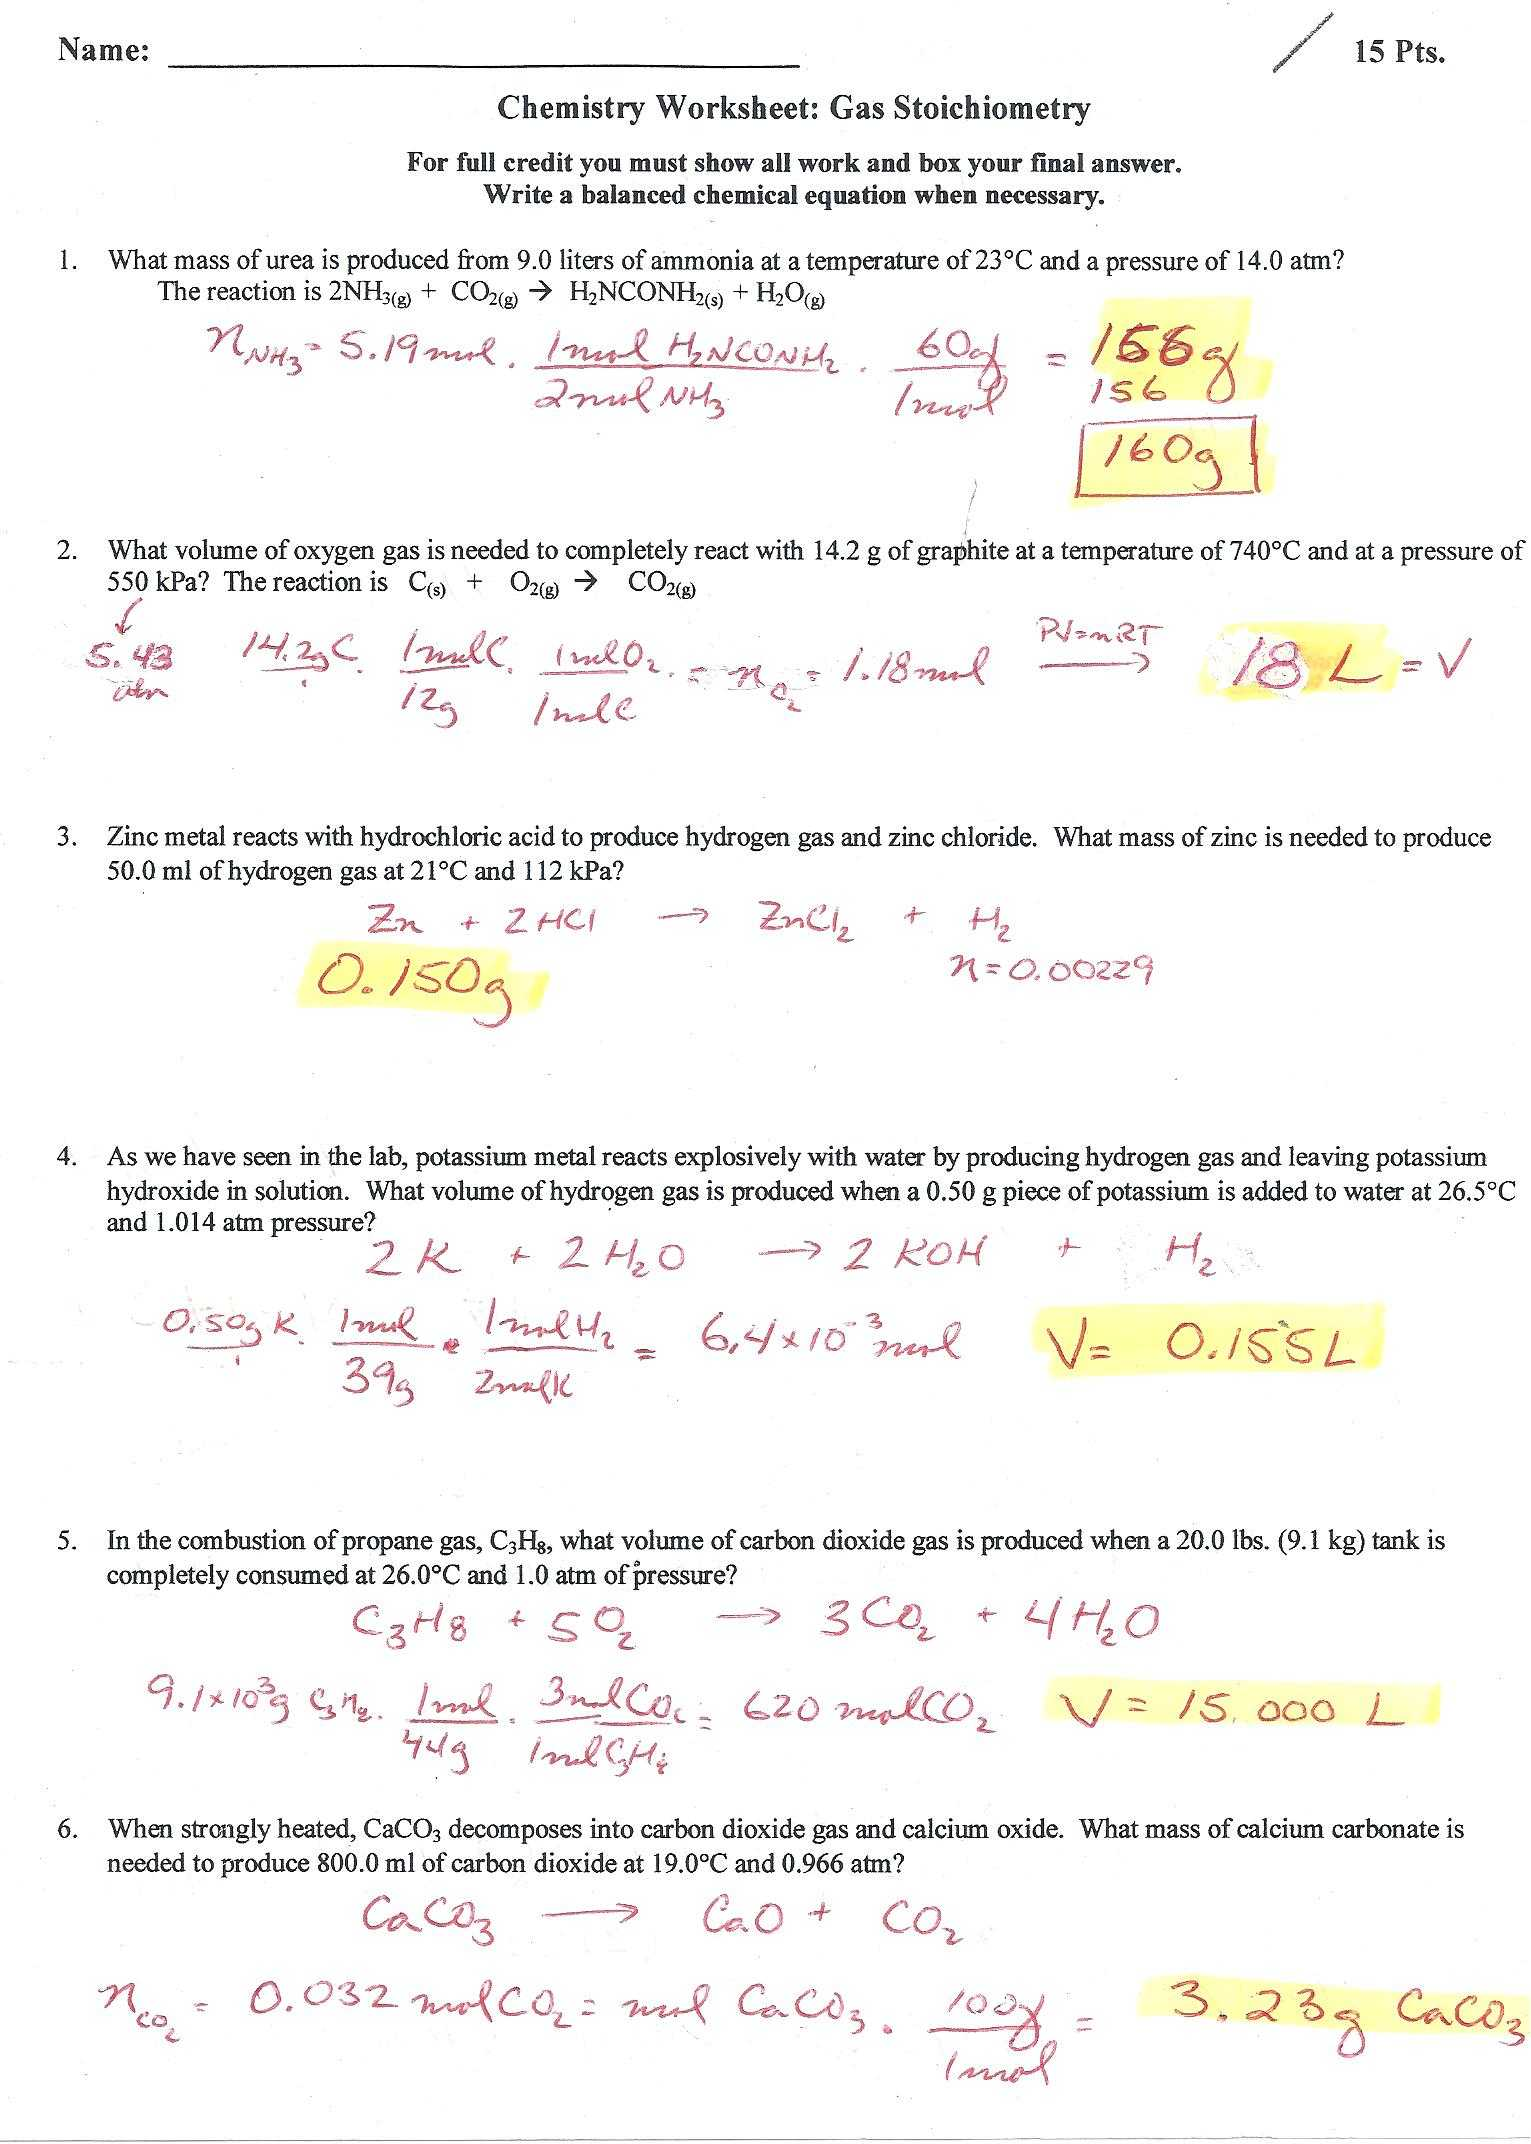 Balancing Chemical Equations Worksheet with Answers Grade 10 together with Stoichiometry Problems Chem Worksheet 12 2 Breadandhearth